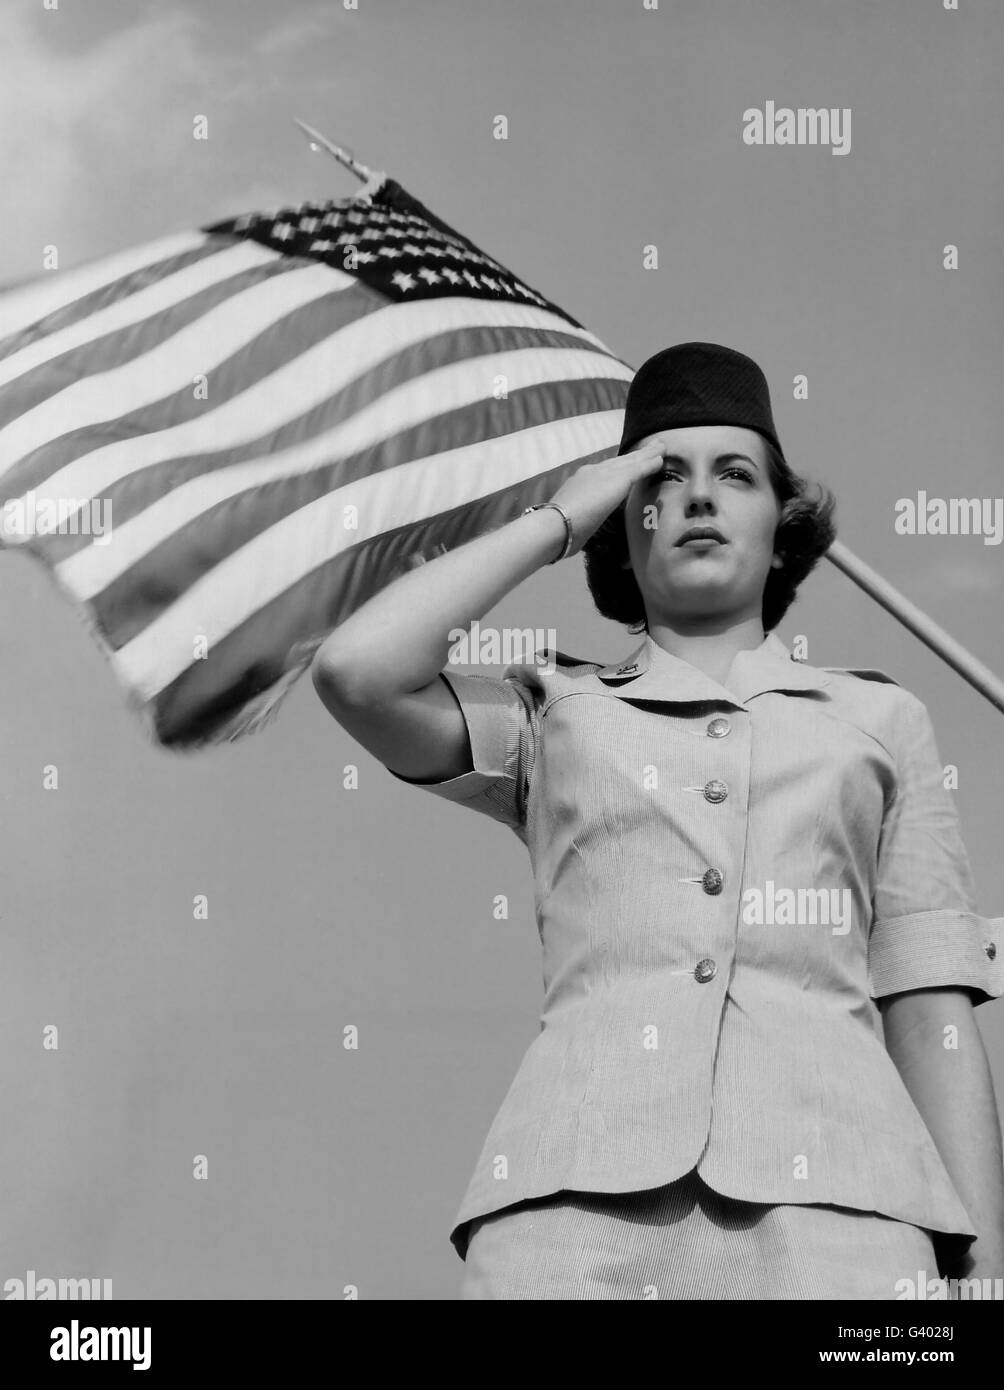 A Woman in the Air Force Officer gestures a salute. - Stock Image